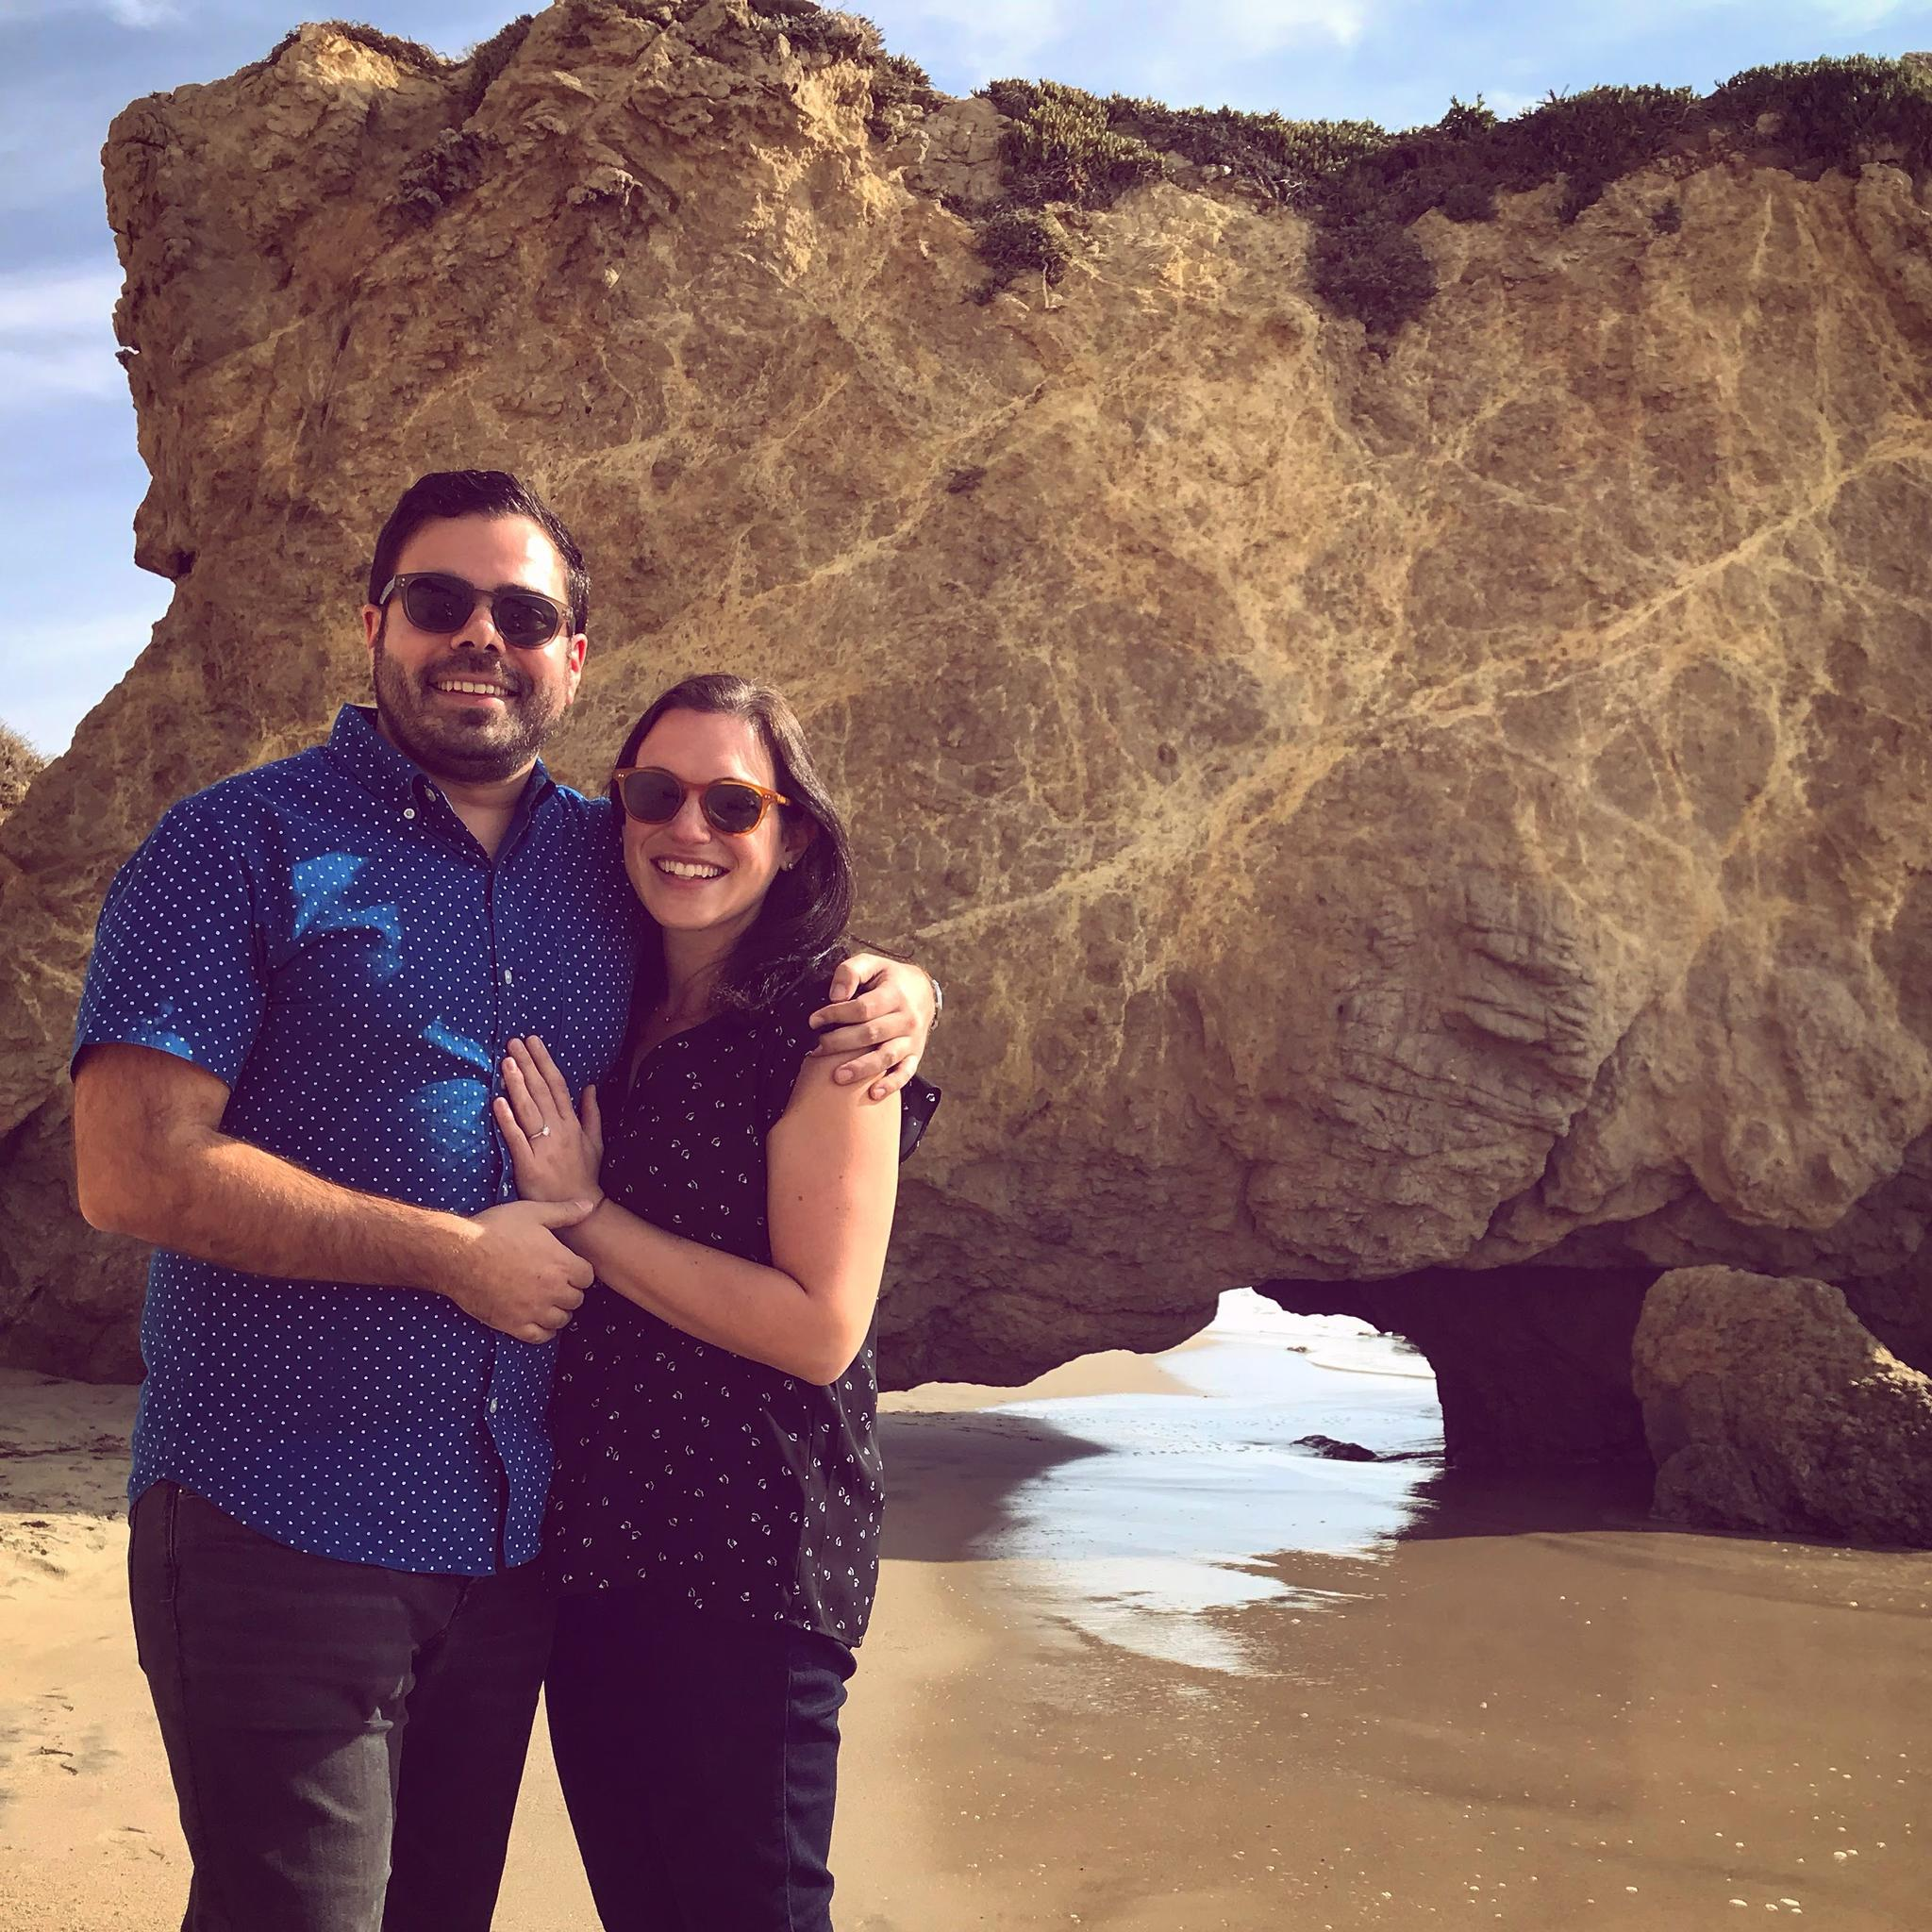 We enjoyed our friend's weddings so much... that we got engaged!! (Malibu, CA)